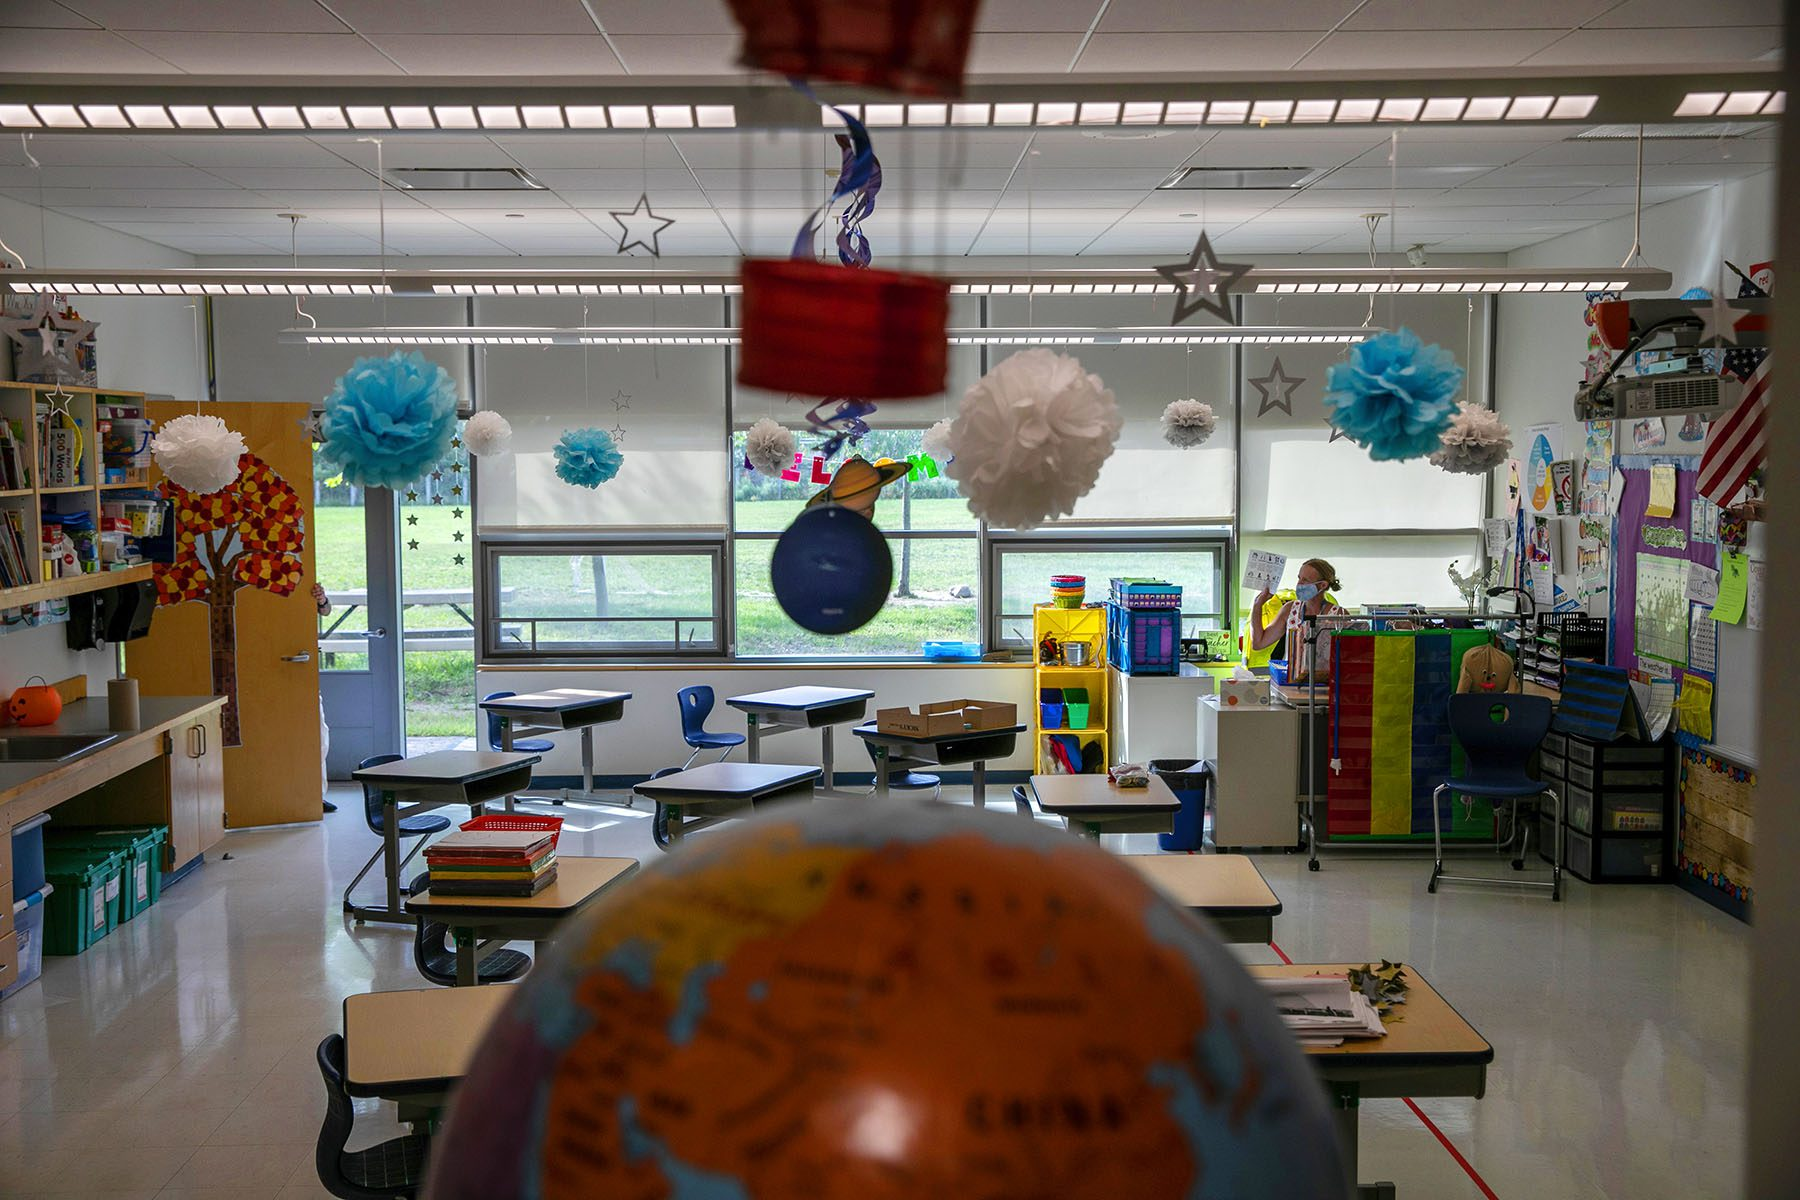 An empty classroom decorated with drawings of planets and trees is seen. A teacher is seen sitting at a desk and wearing a face mask.